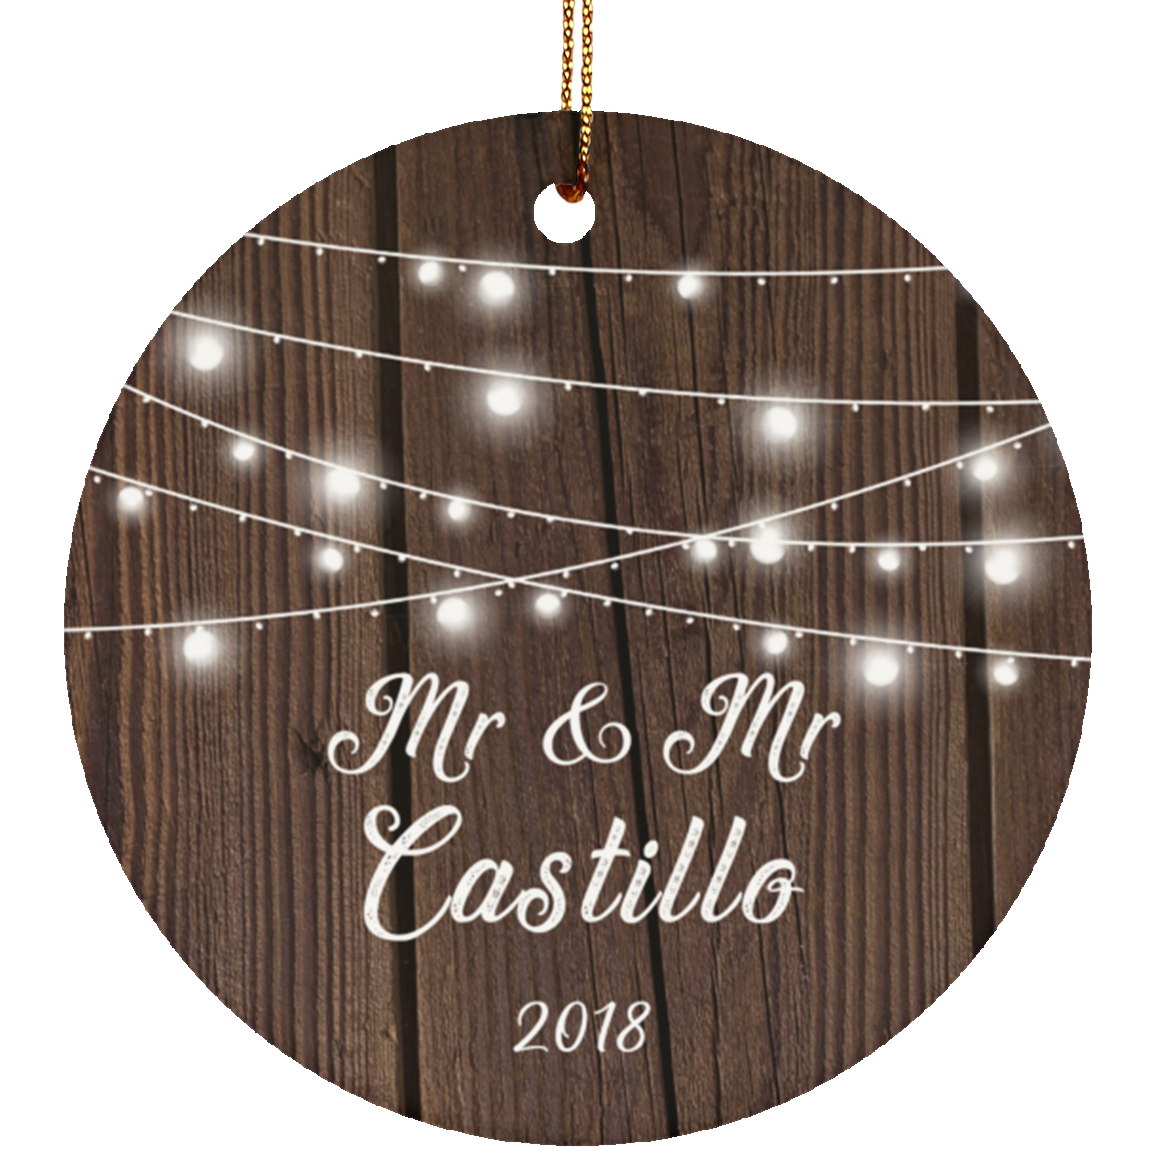 Mr & Mr Castillo 2018 - Circle Ornament